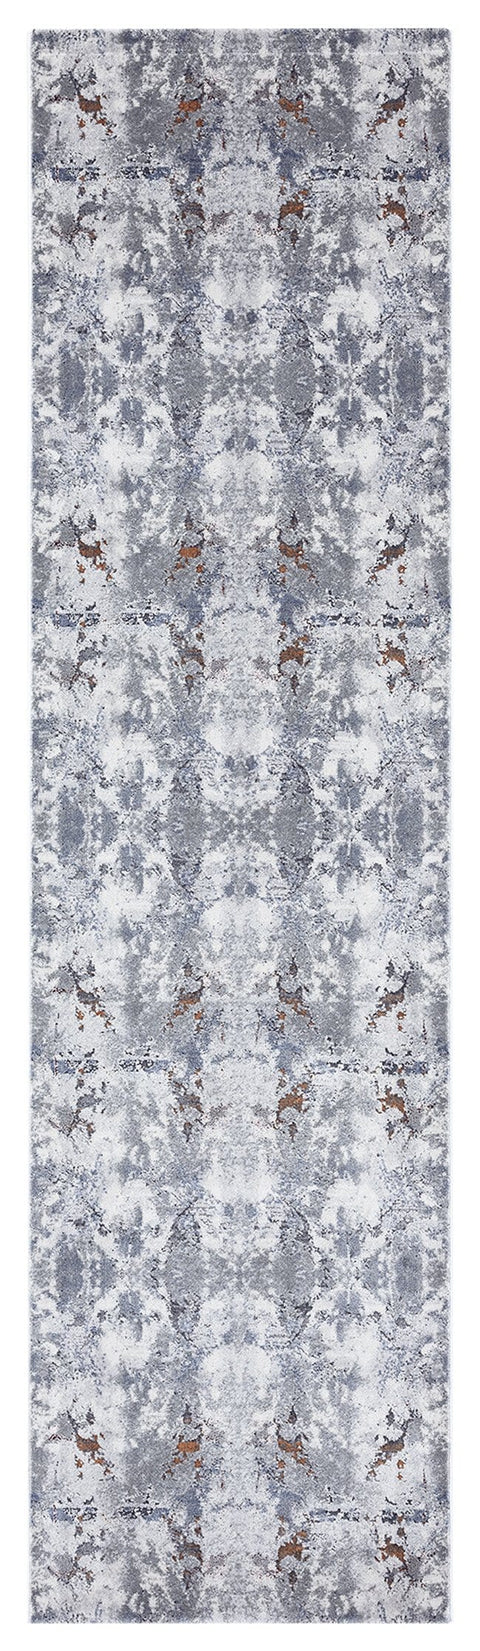 neve-blue-grey-bronze-transitional-motif-runner-rug-missamara.jpg